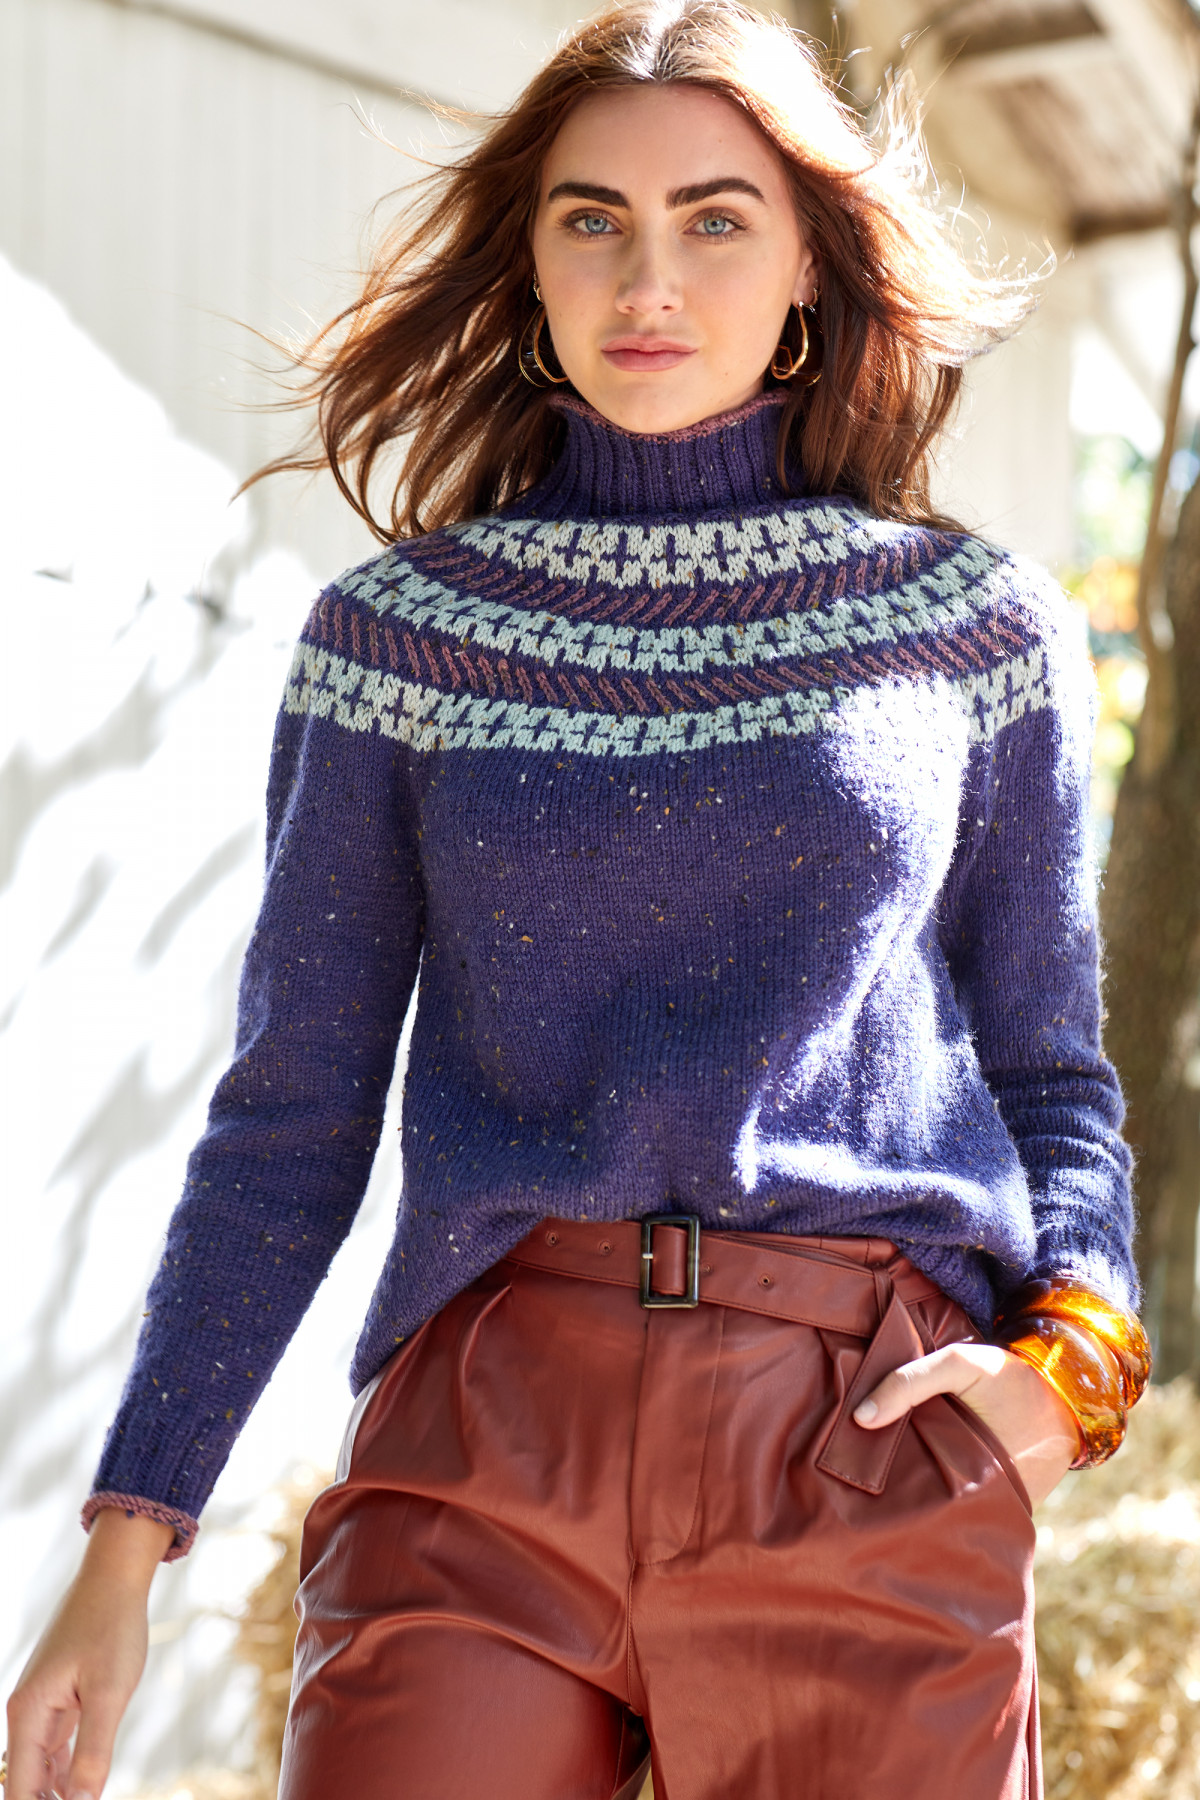 Editorial fashion photography of a female model wearing a dark blue knit sweater